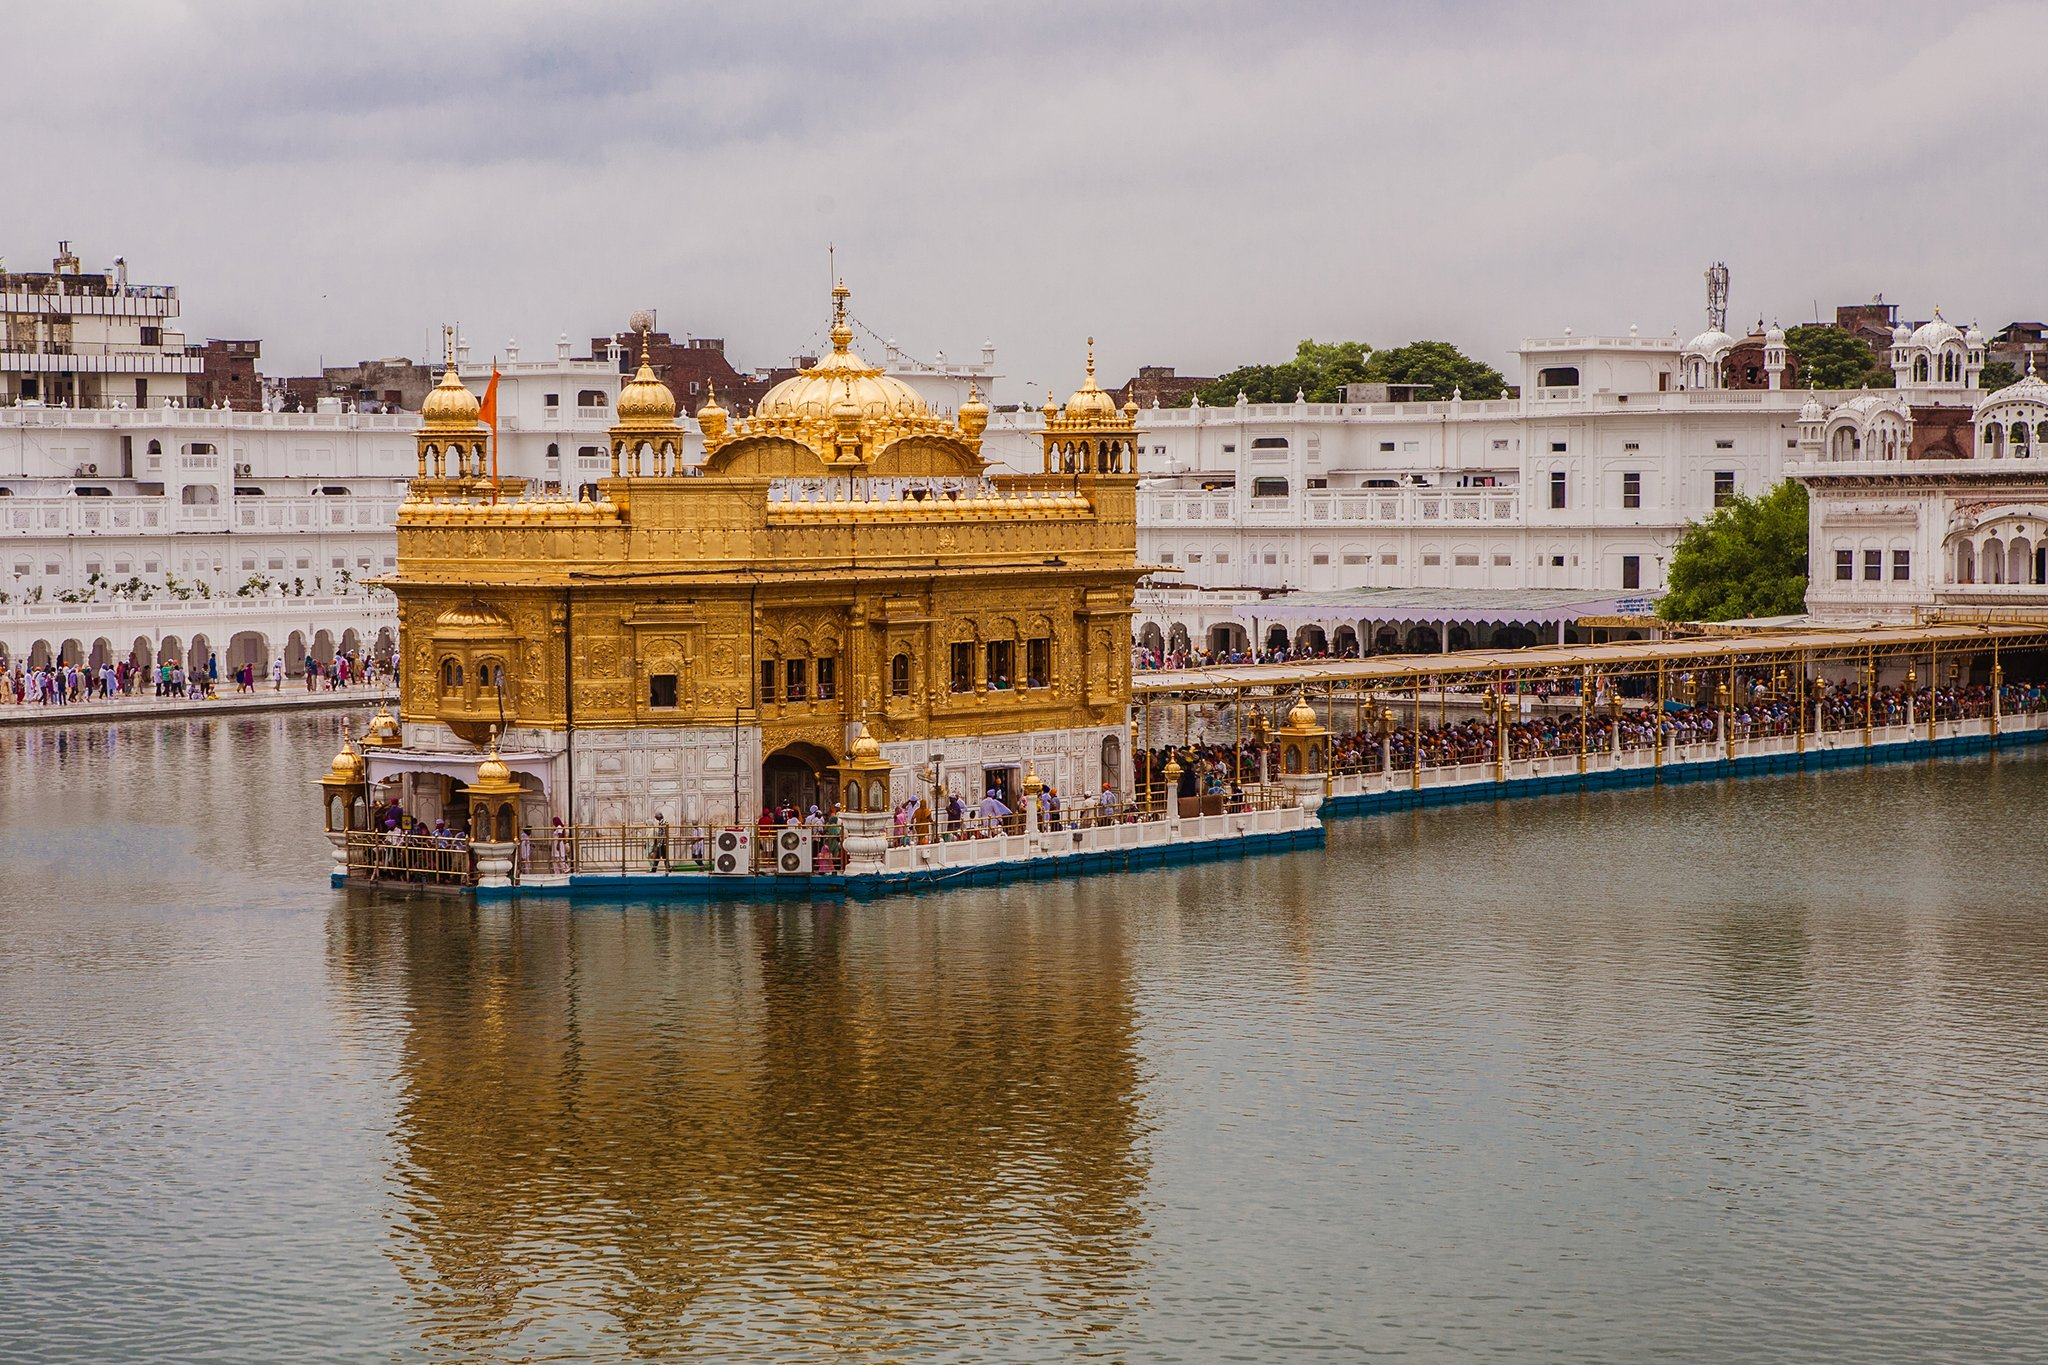 Long queues are seen at the main entrance of the Golden Temple in Amritsar, the most important gurudwara for the Sikhs, made in gold and surrounded by a holy lake.